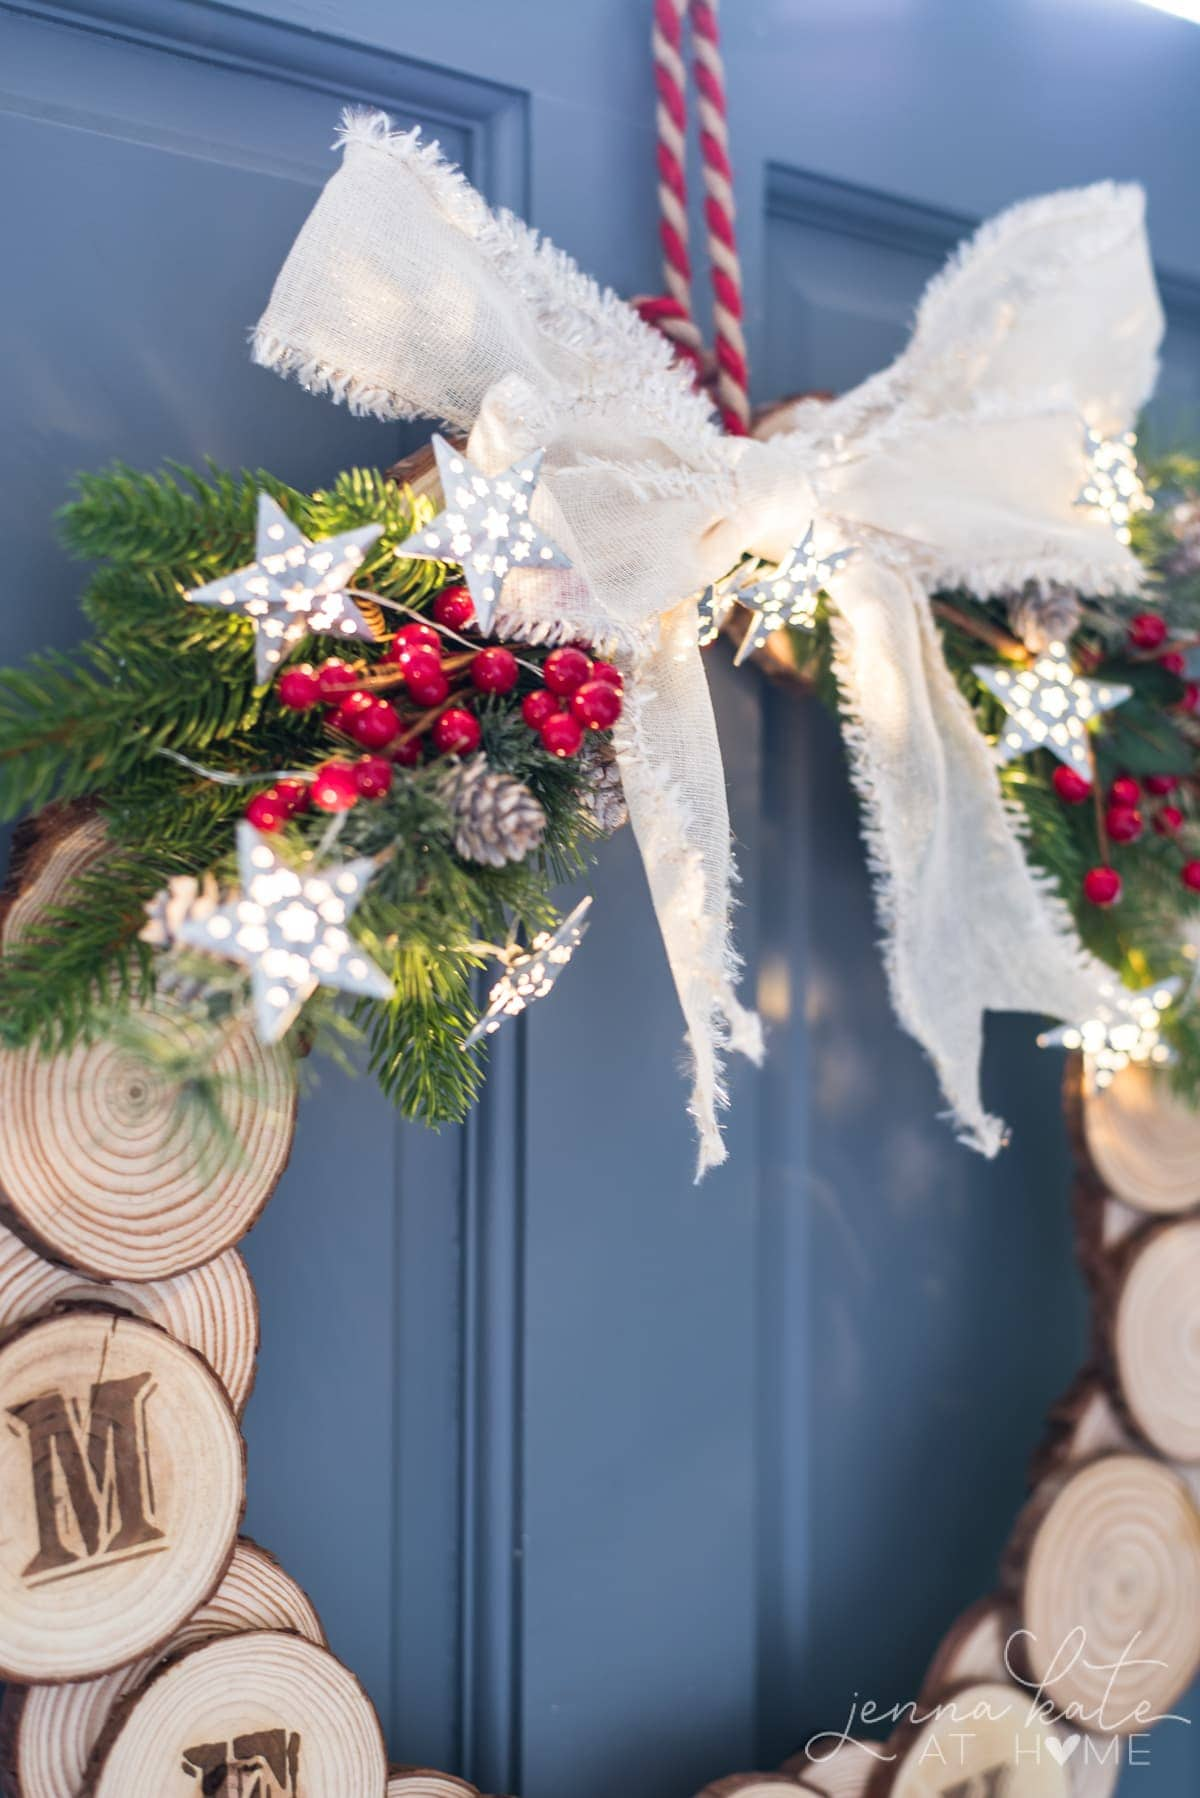 DIY Wood slice Christmas wreath